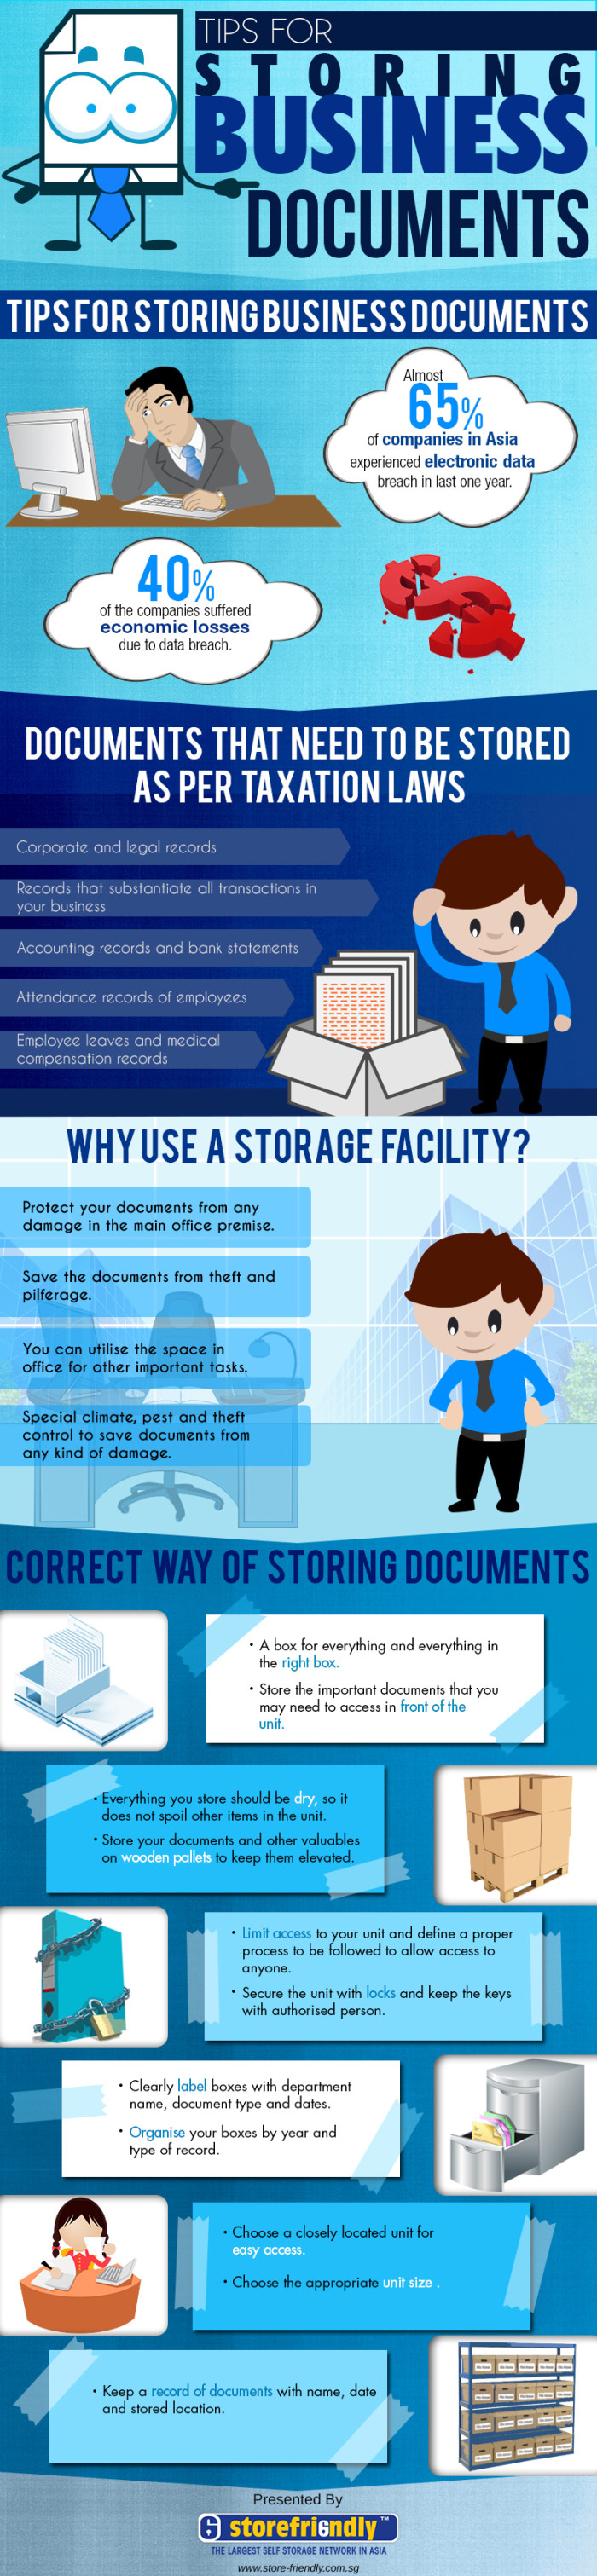 Tips For Storing Business Documents